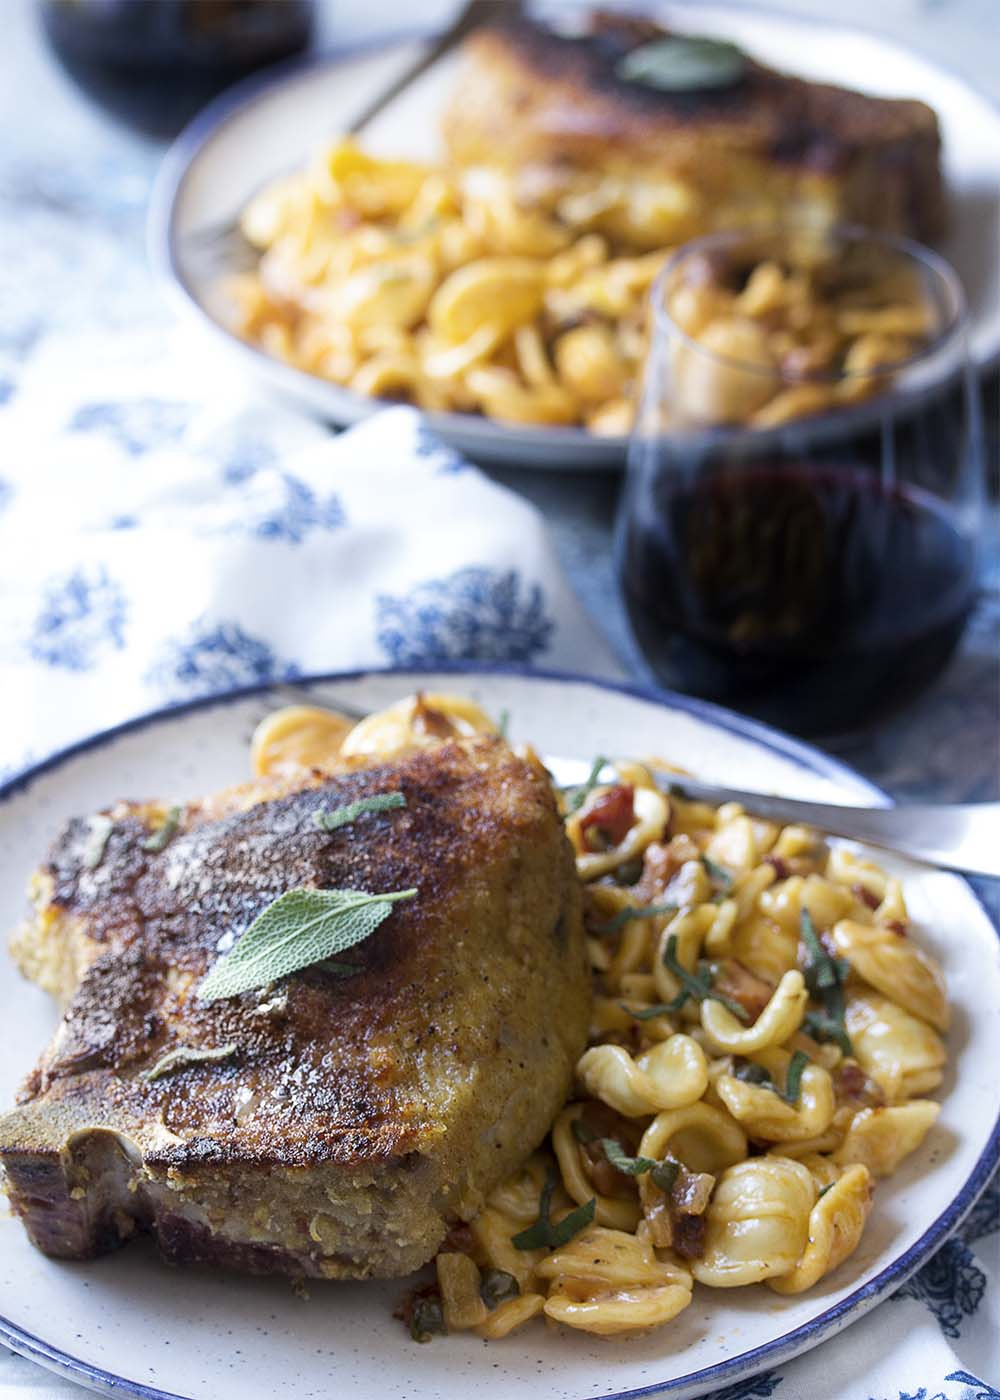 Two plates of breaded cheese stuffed pork chops over pasta.